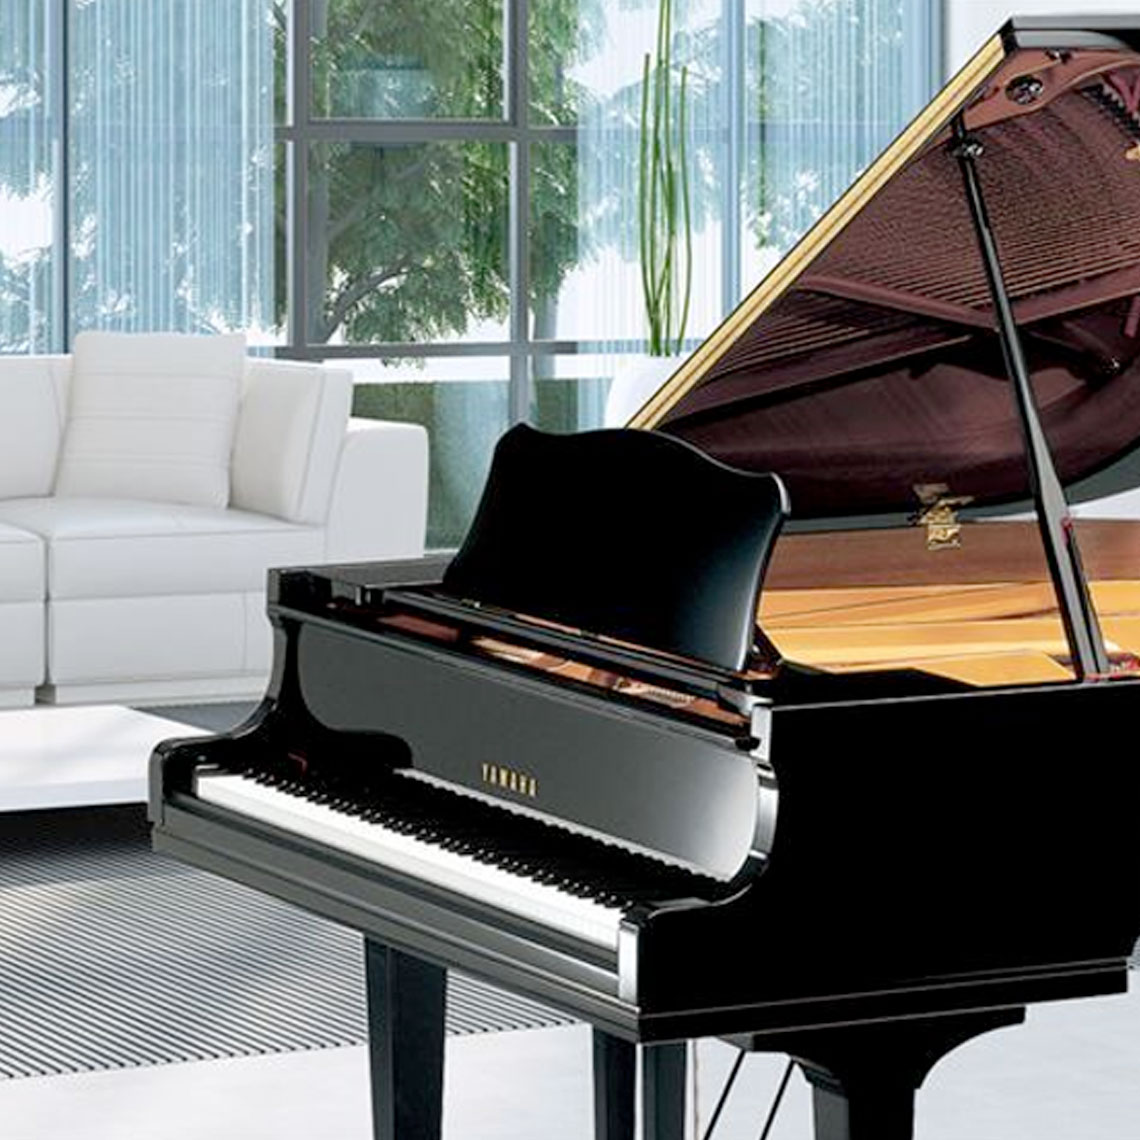 Now is the time to own your dream piano.